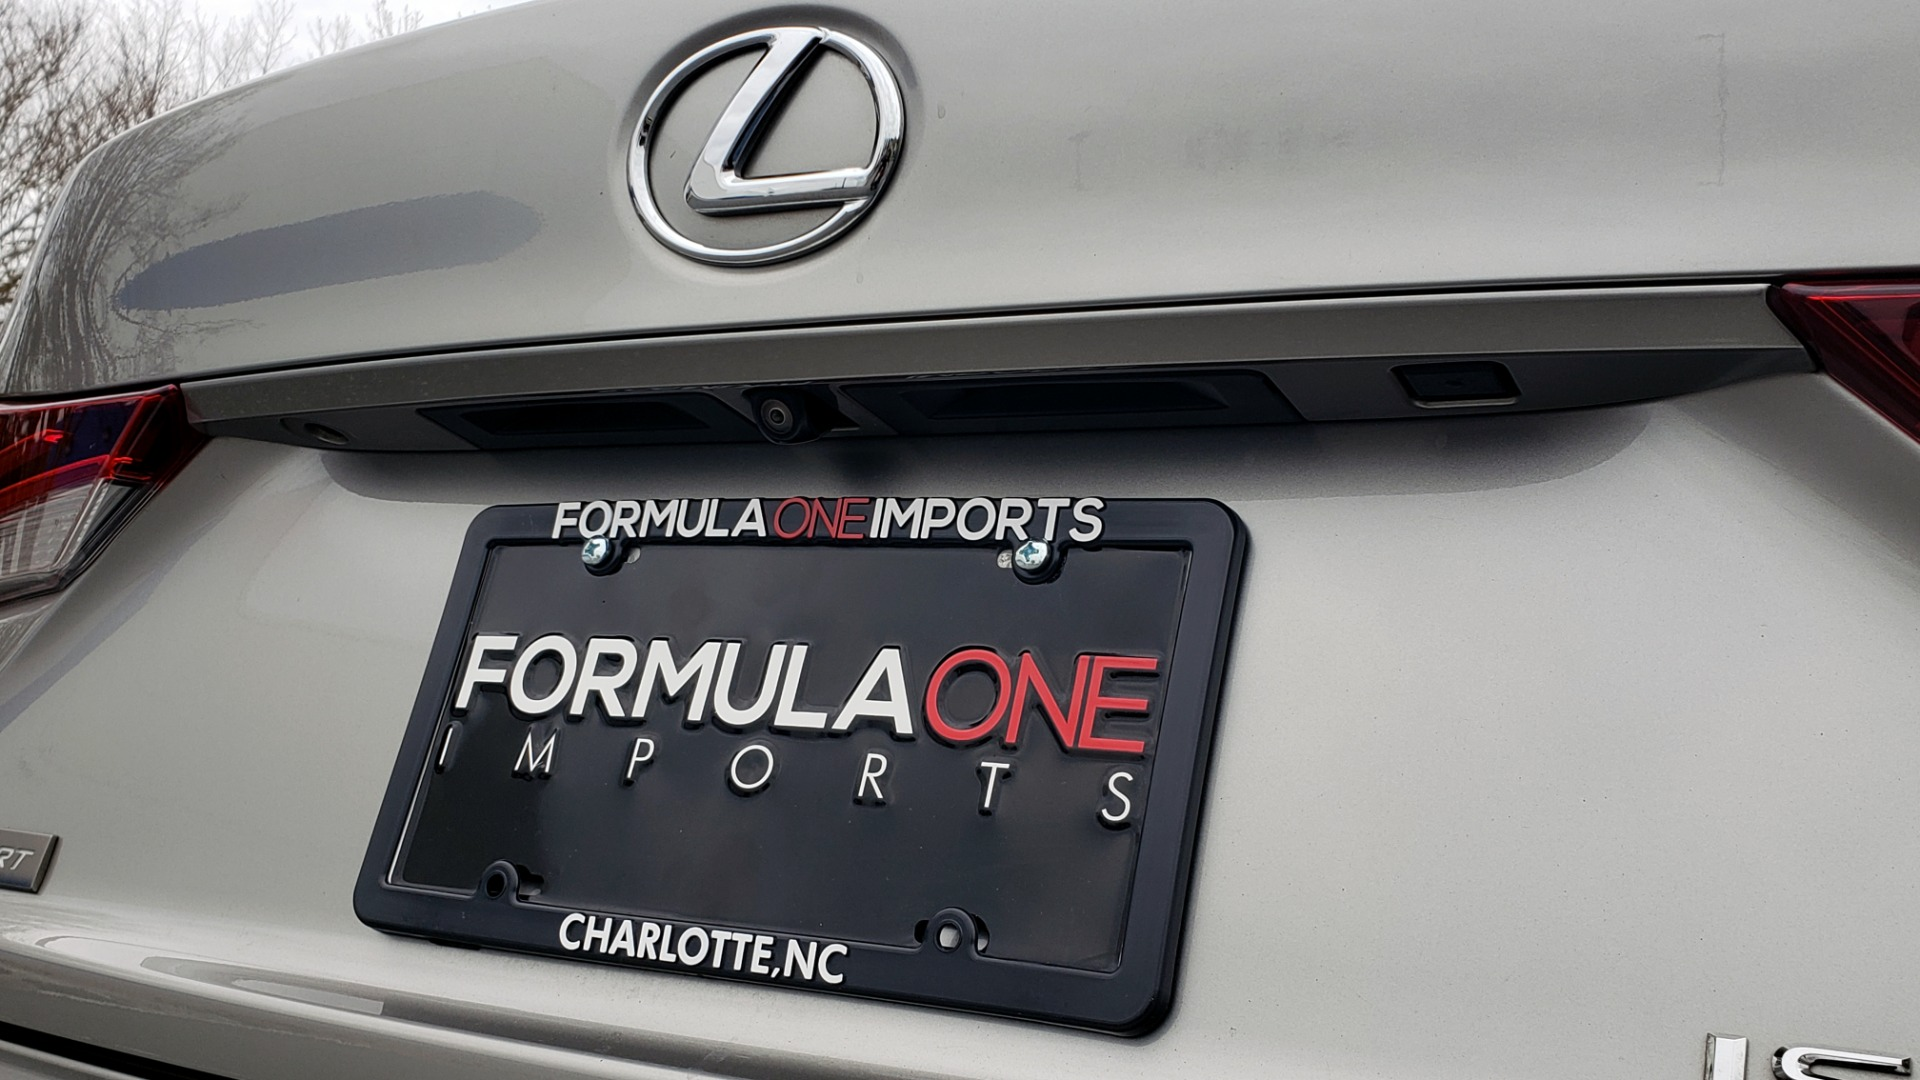 Used 2017 Lexus IS 200 TURBO F-SPORT / BSM / SUNROOF / VENT SEATS / REARVIEW for sale Sold at Formula Imports in Charlotte NC 28227 34